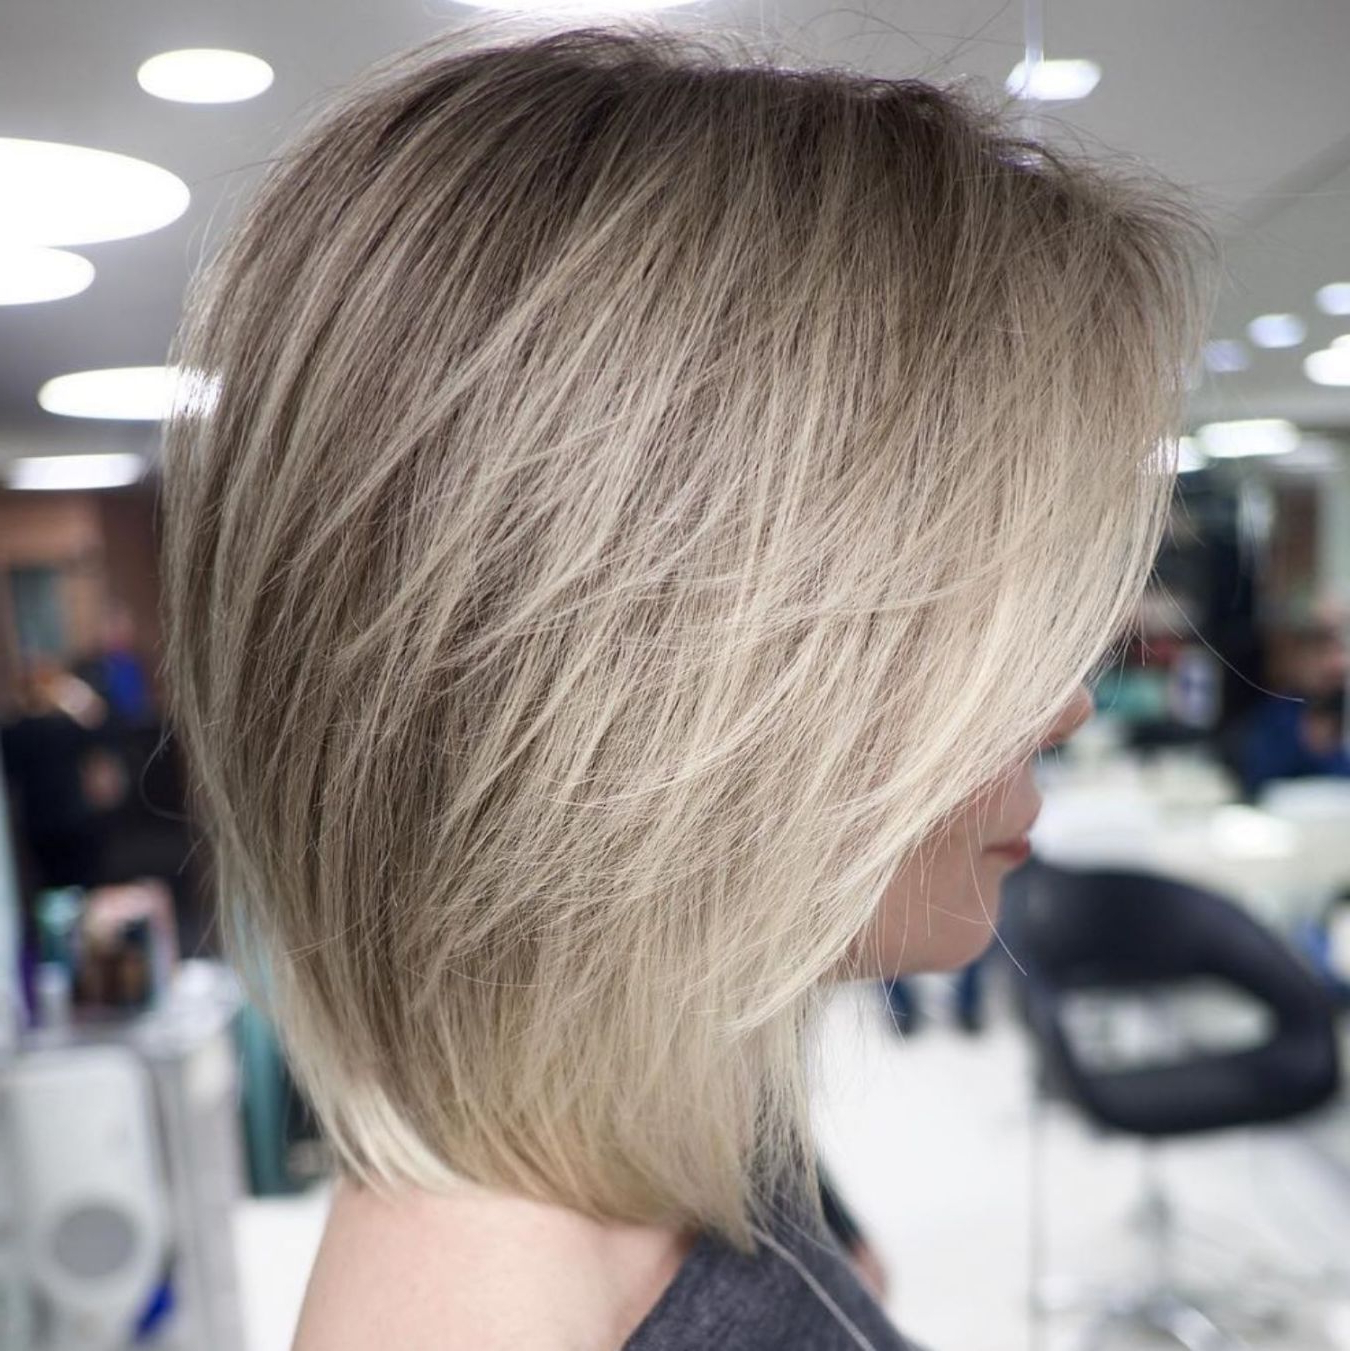 60 Layered Bob Styles: Modern Haircuts With Layers For Any Occasion Intended For Famous Medium Hairstyles With Feathered Sides (View 4 of 20)